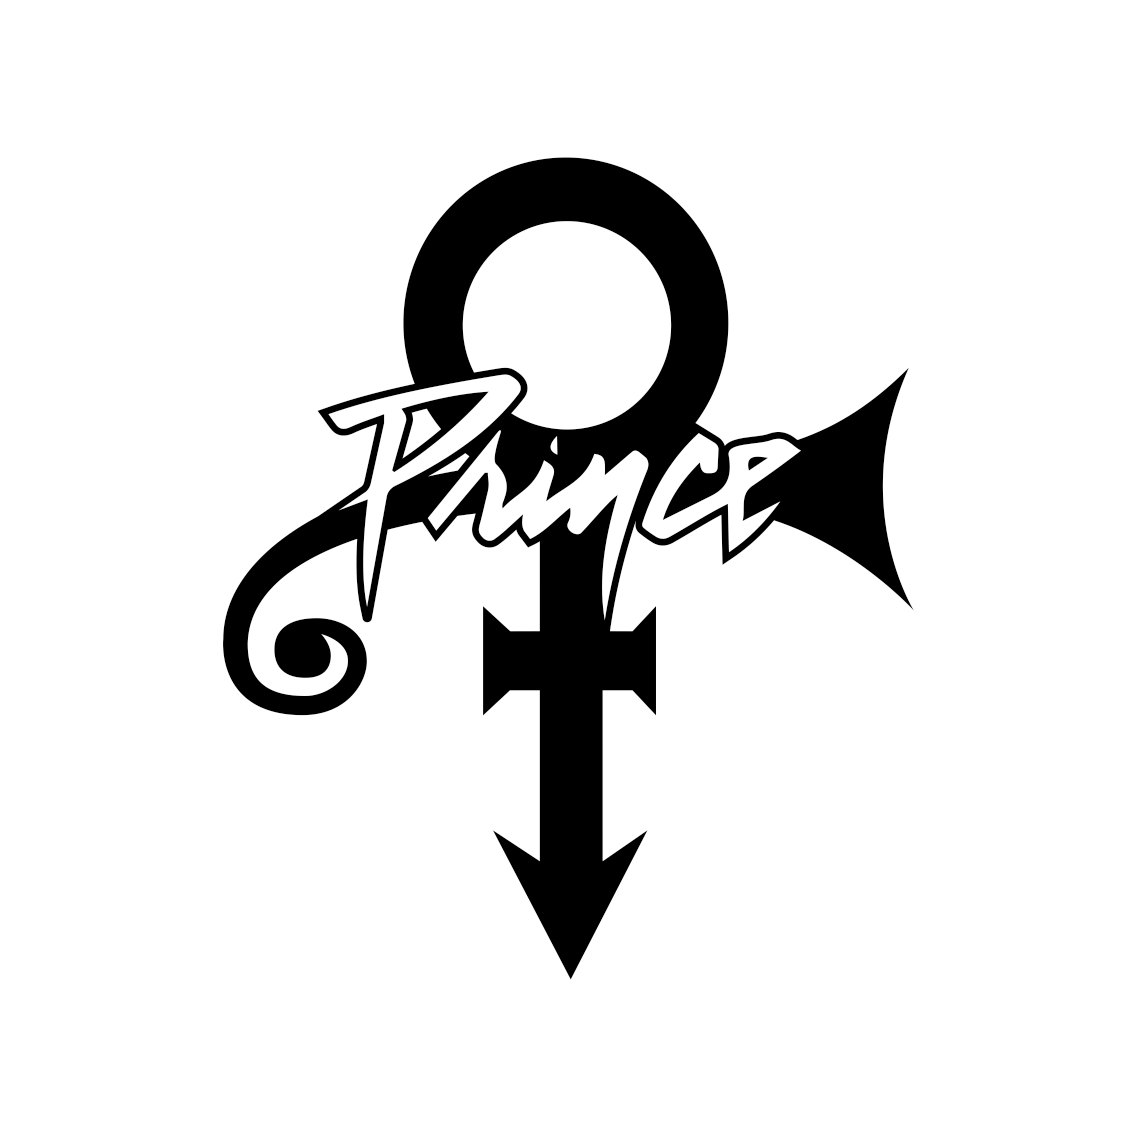 Prince Memorial Name Graphics Design Svg Dxf